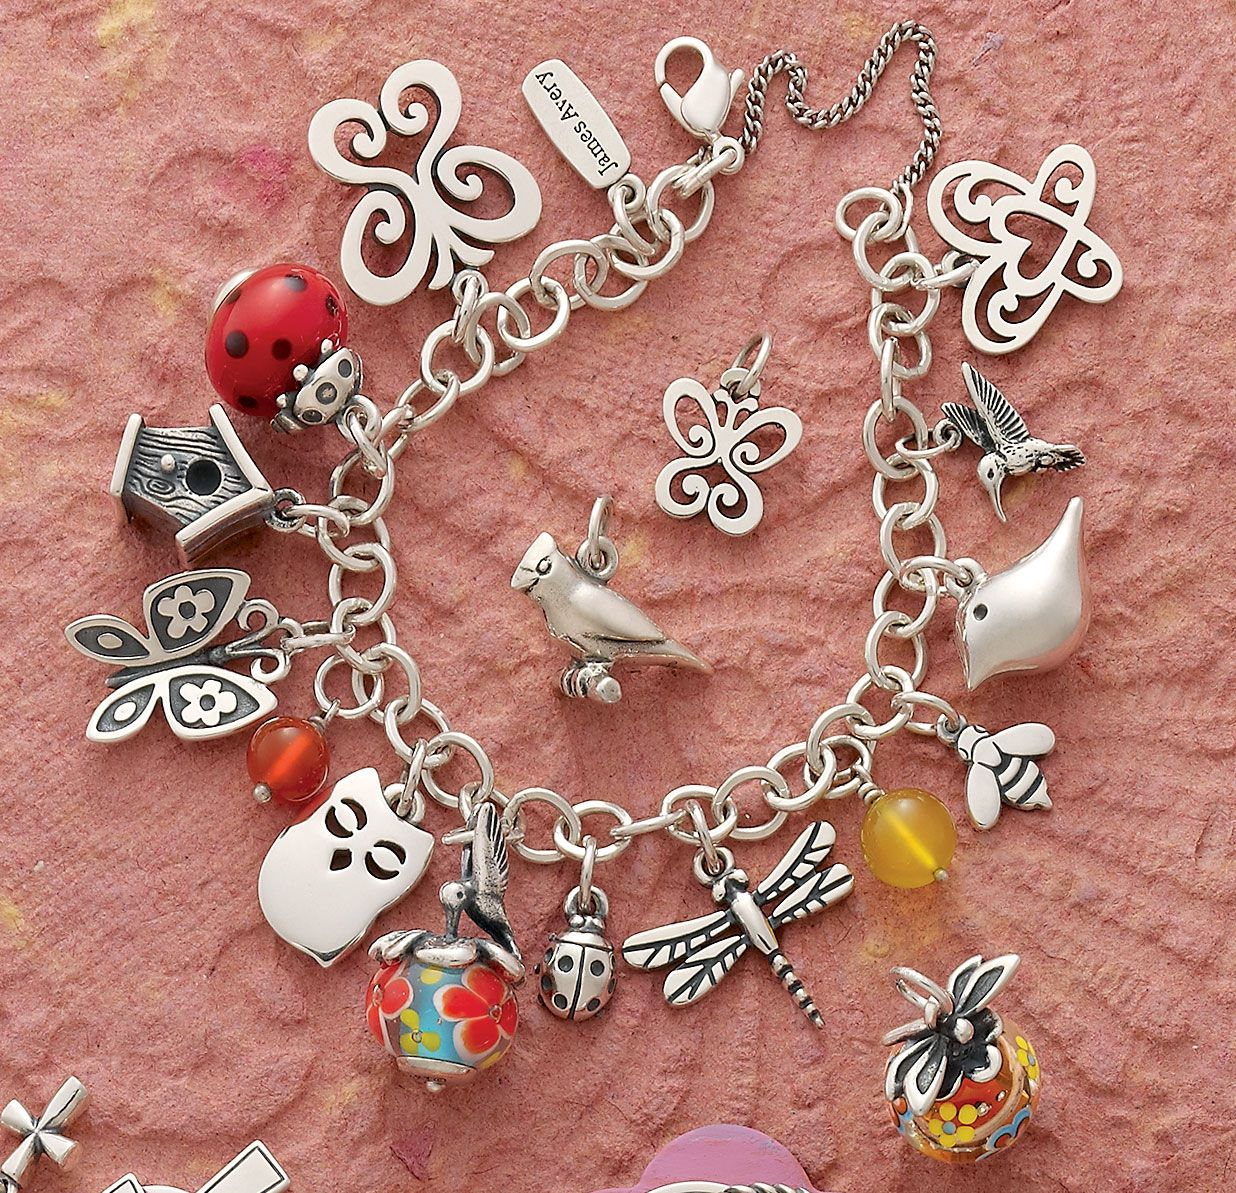 Charms Inspired by Animals and Nature JamesAvery   James avery ...